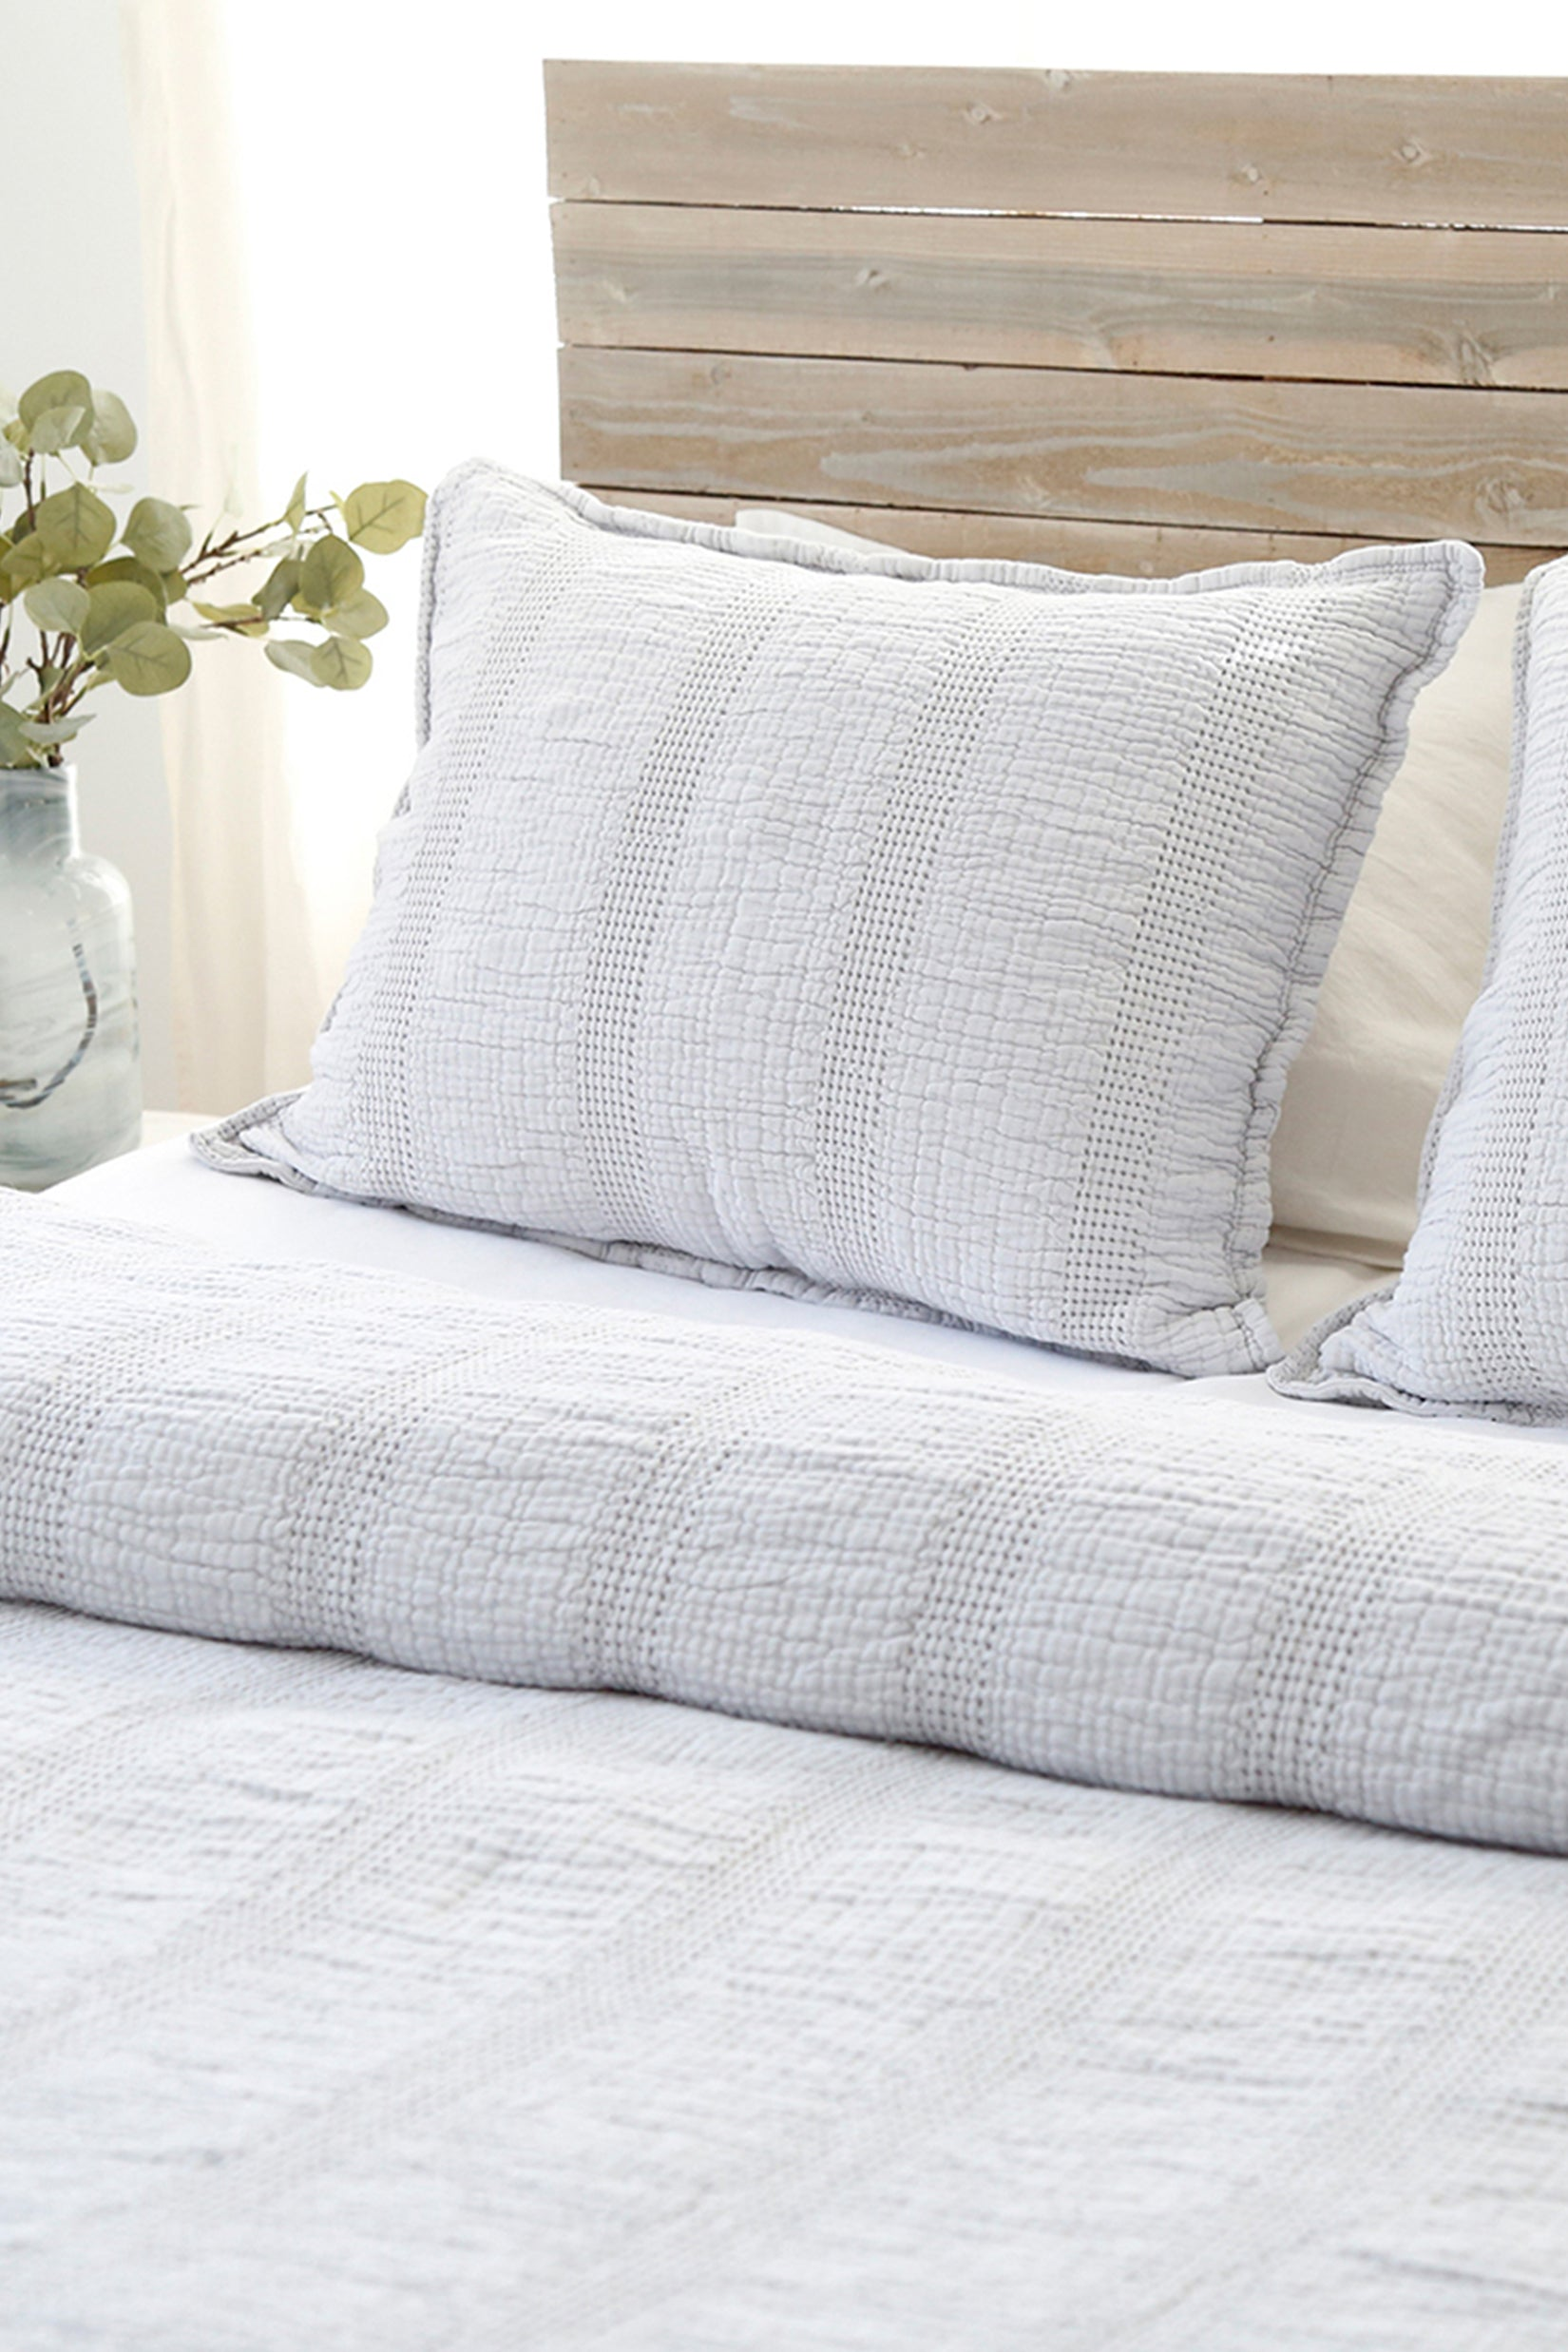 Light grey bedding on a bed